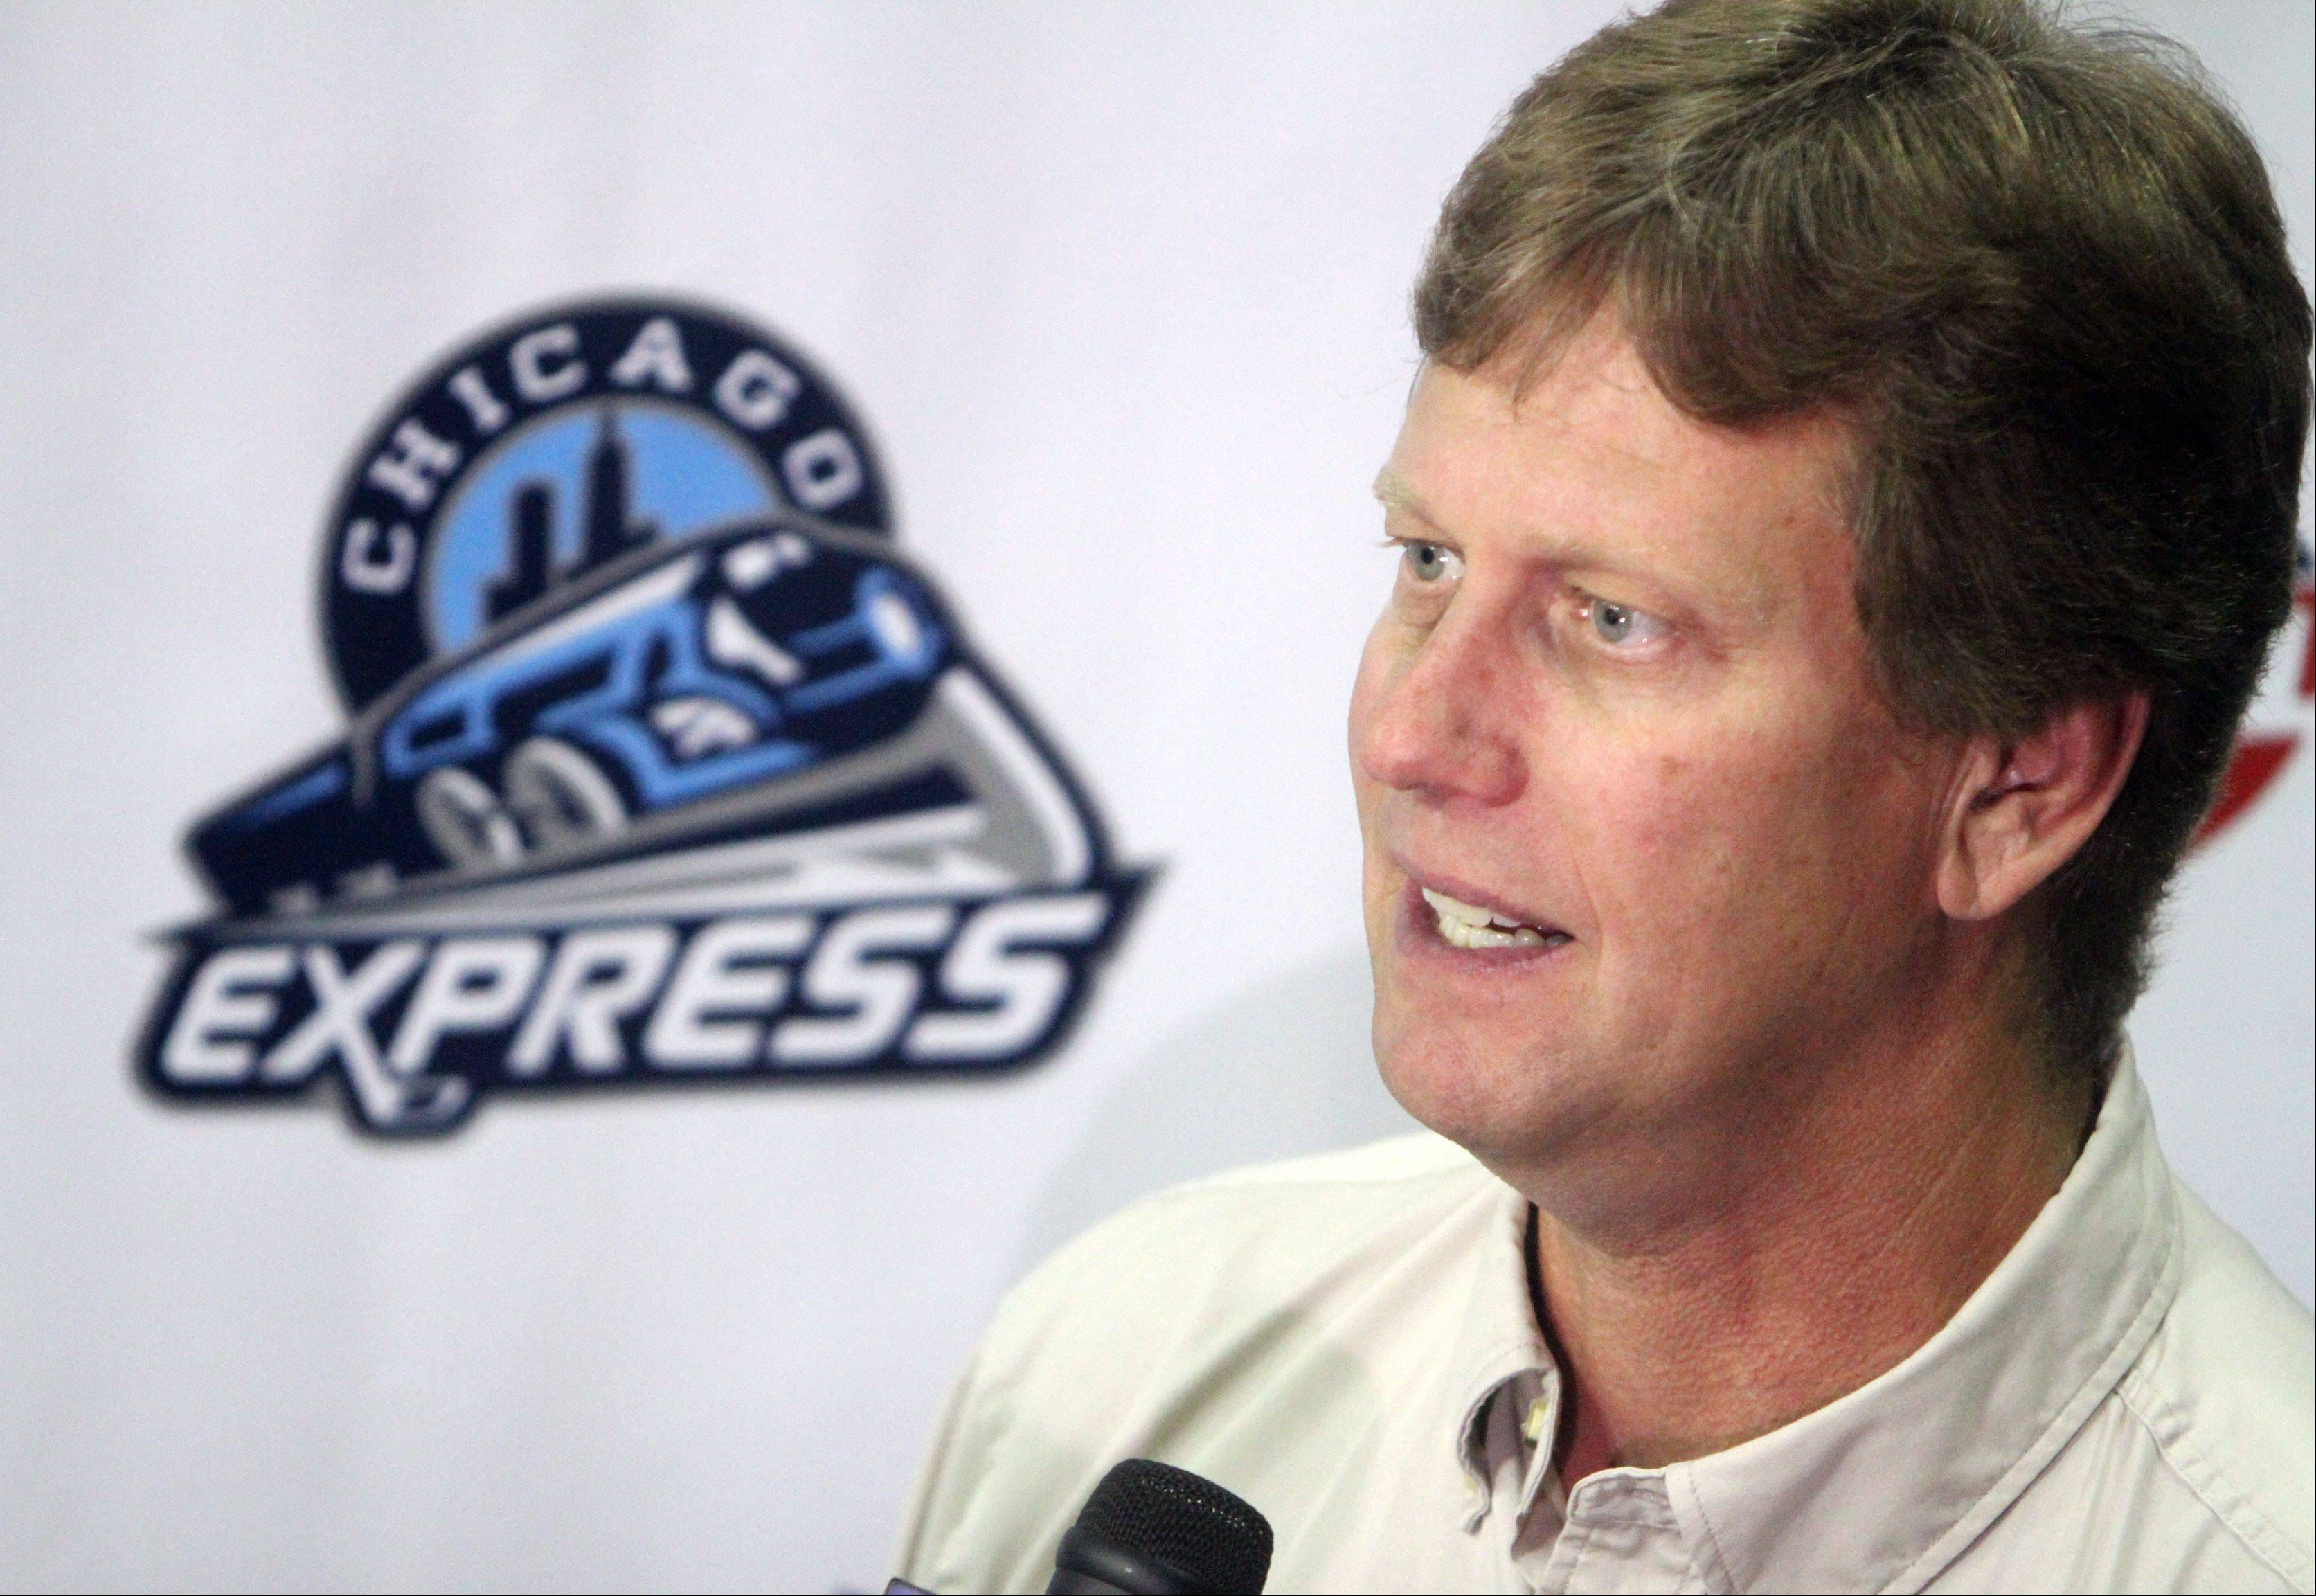 Chicago Express owner Craig Drecktrah speaks to the press during team media day last October at the Sears Centre in Hoffman Estates.